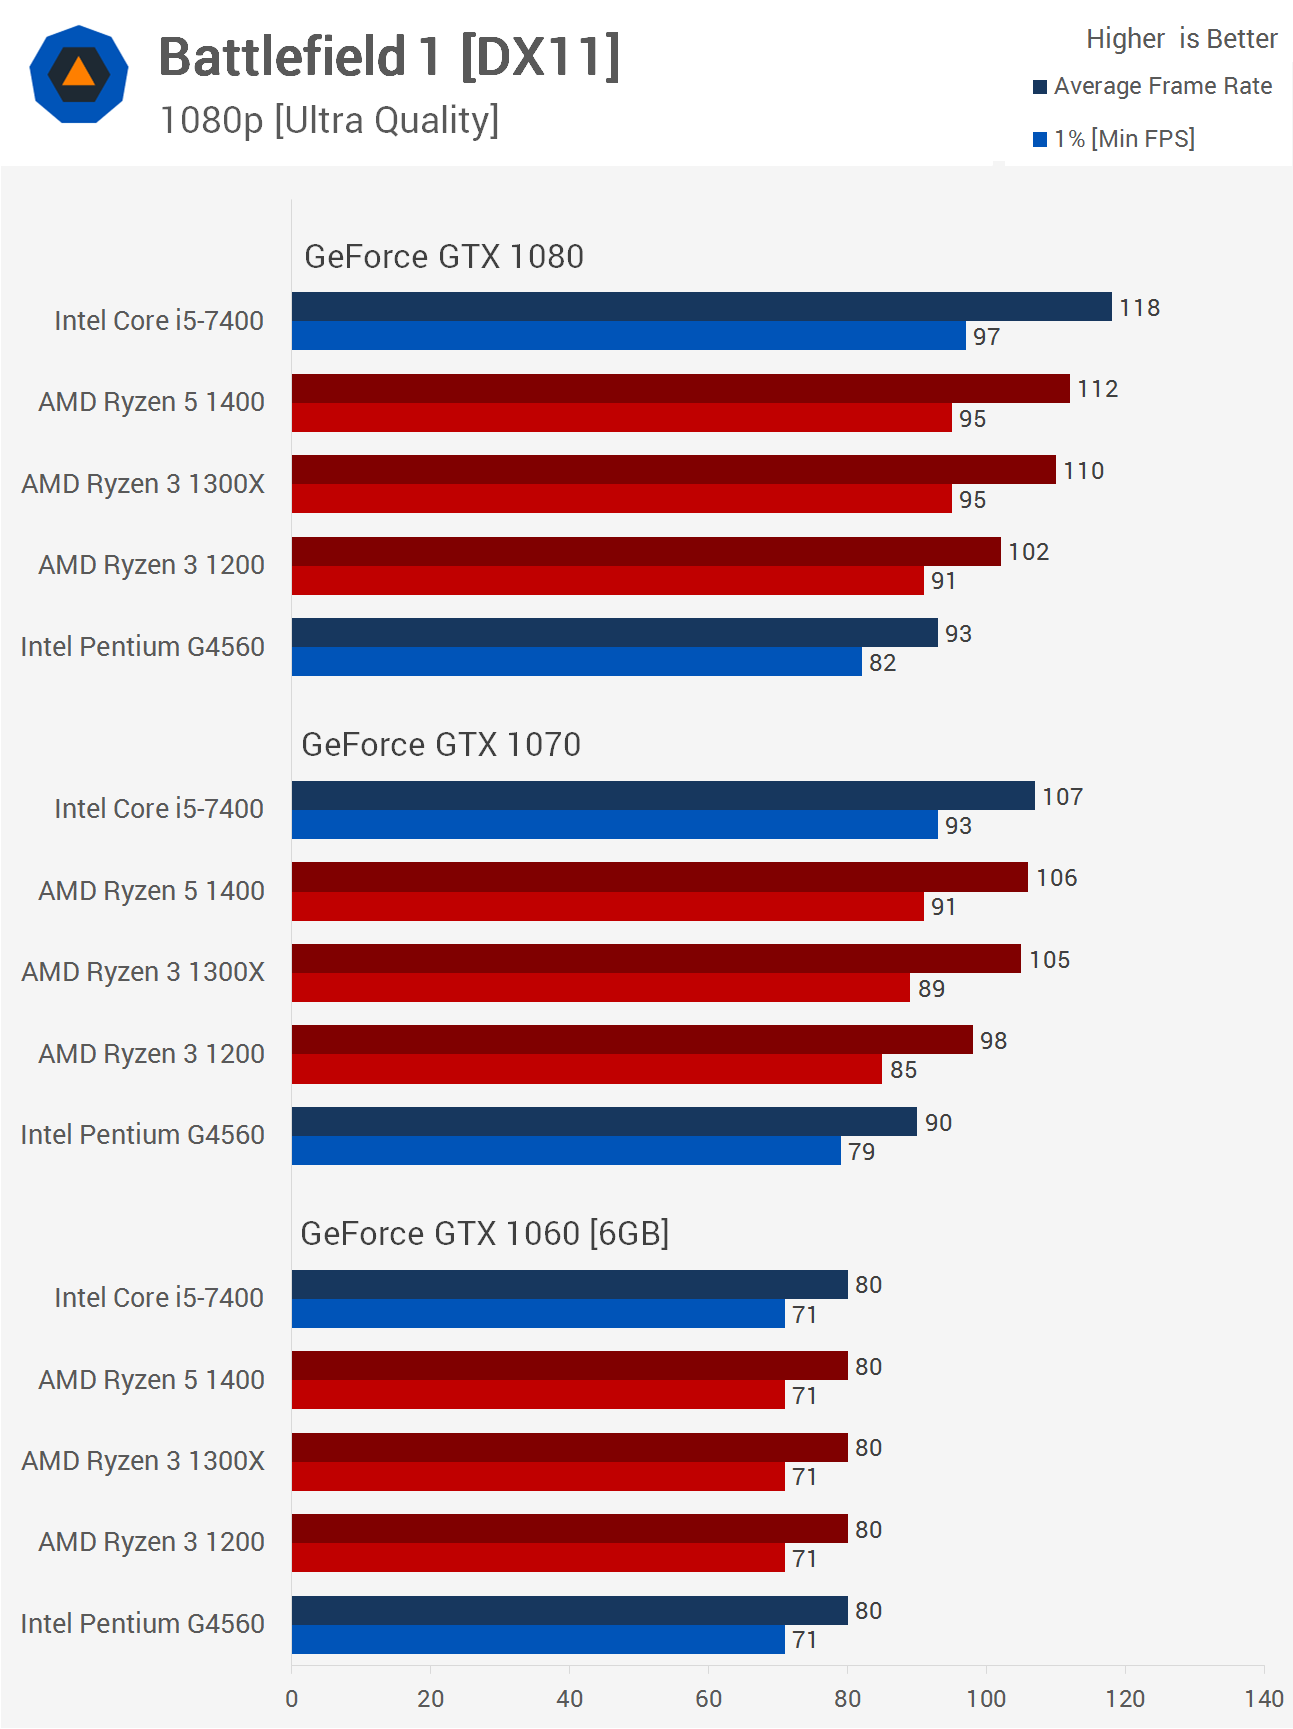 Circuitry For 7400 Test Ryzen 3 The Ultimate Gaming Benchmark Guide Techspot First Up Is Battlefield 1 And We Have A Lot Going On Here Blue Bars Represent Intel Processors Tested Core I5 Pentium G4560